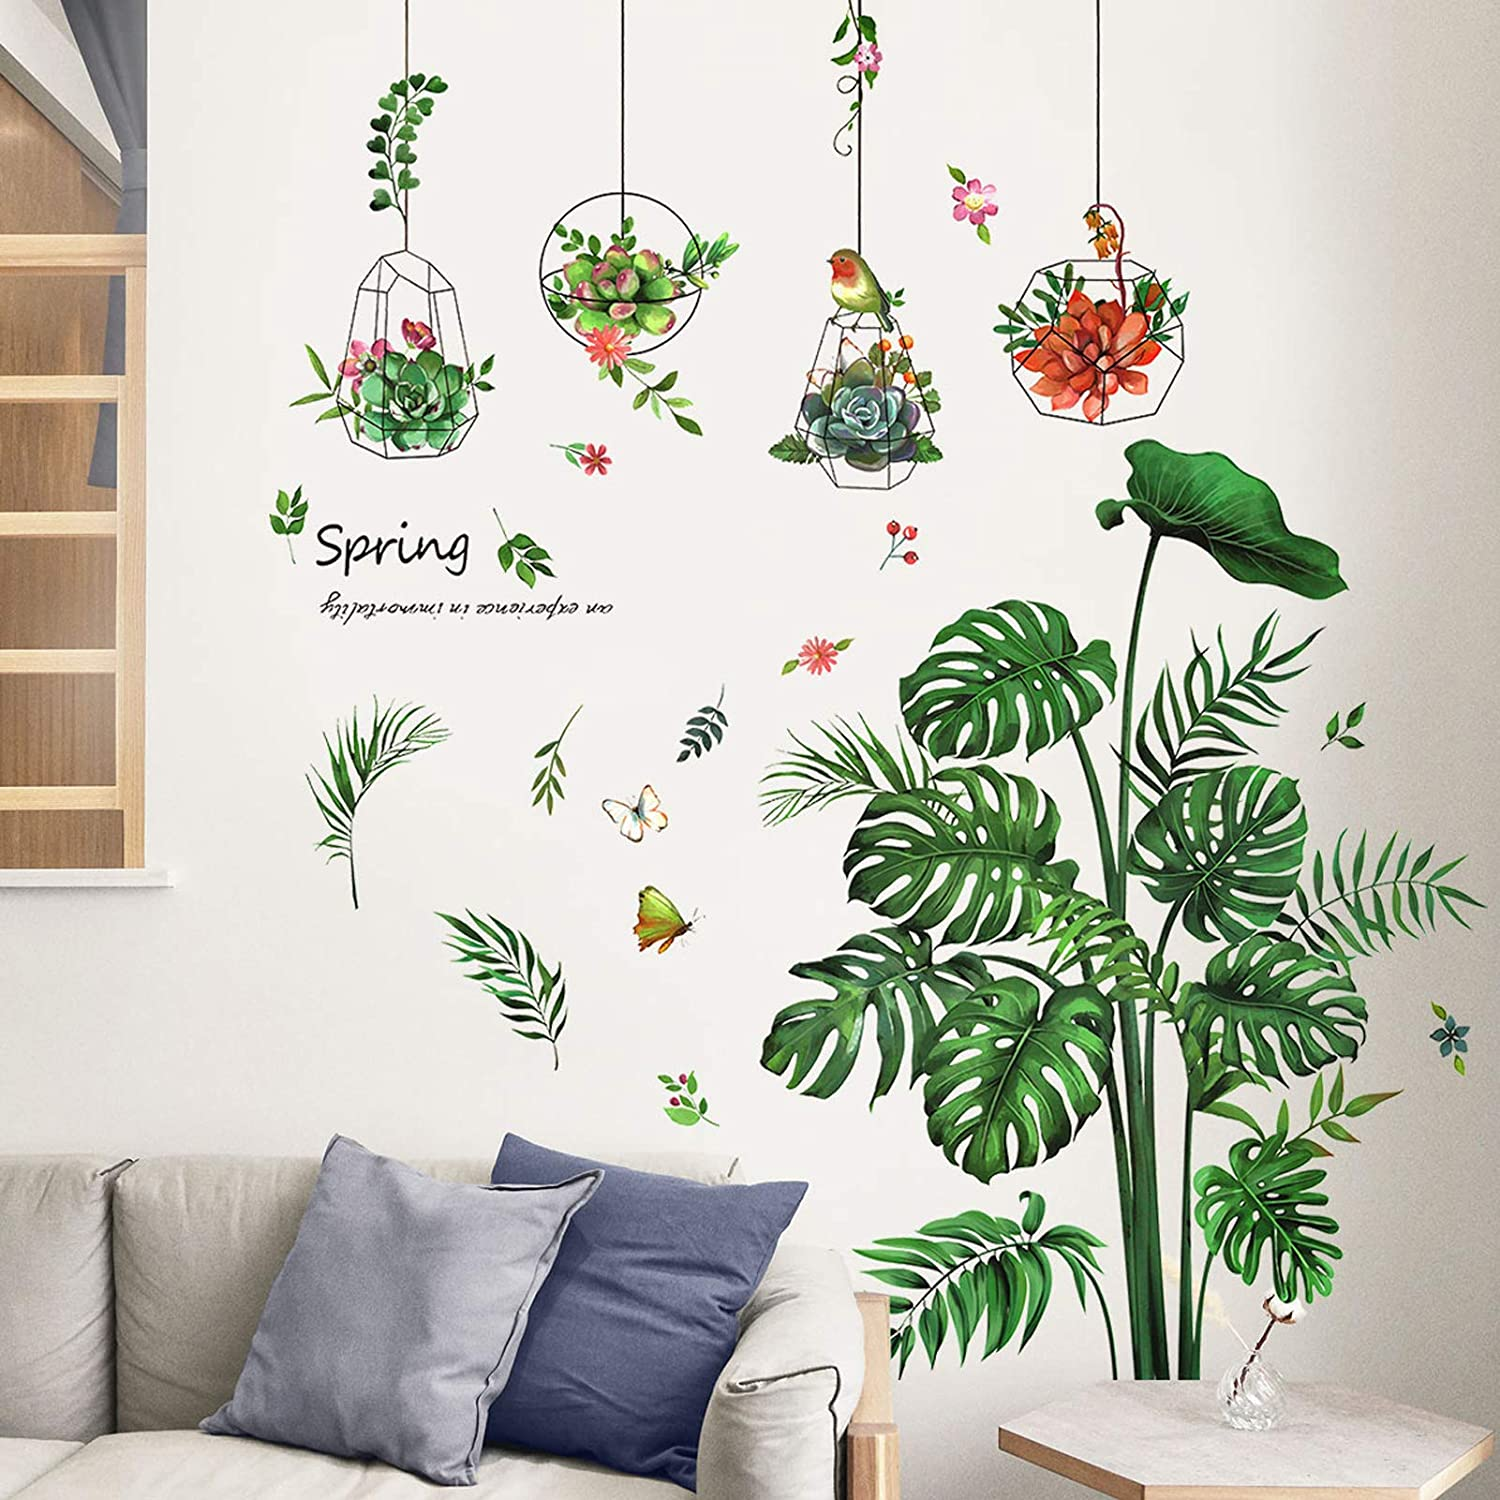 TANOKY Green Tropical Leaves Wall Decal, Palm Tree Leaf Green Plants Wall Stickers Decor, Peel and Stick Wall Murals for Bedroom Living Room Home Decoration - Safe on Walls & Easy Peel